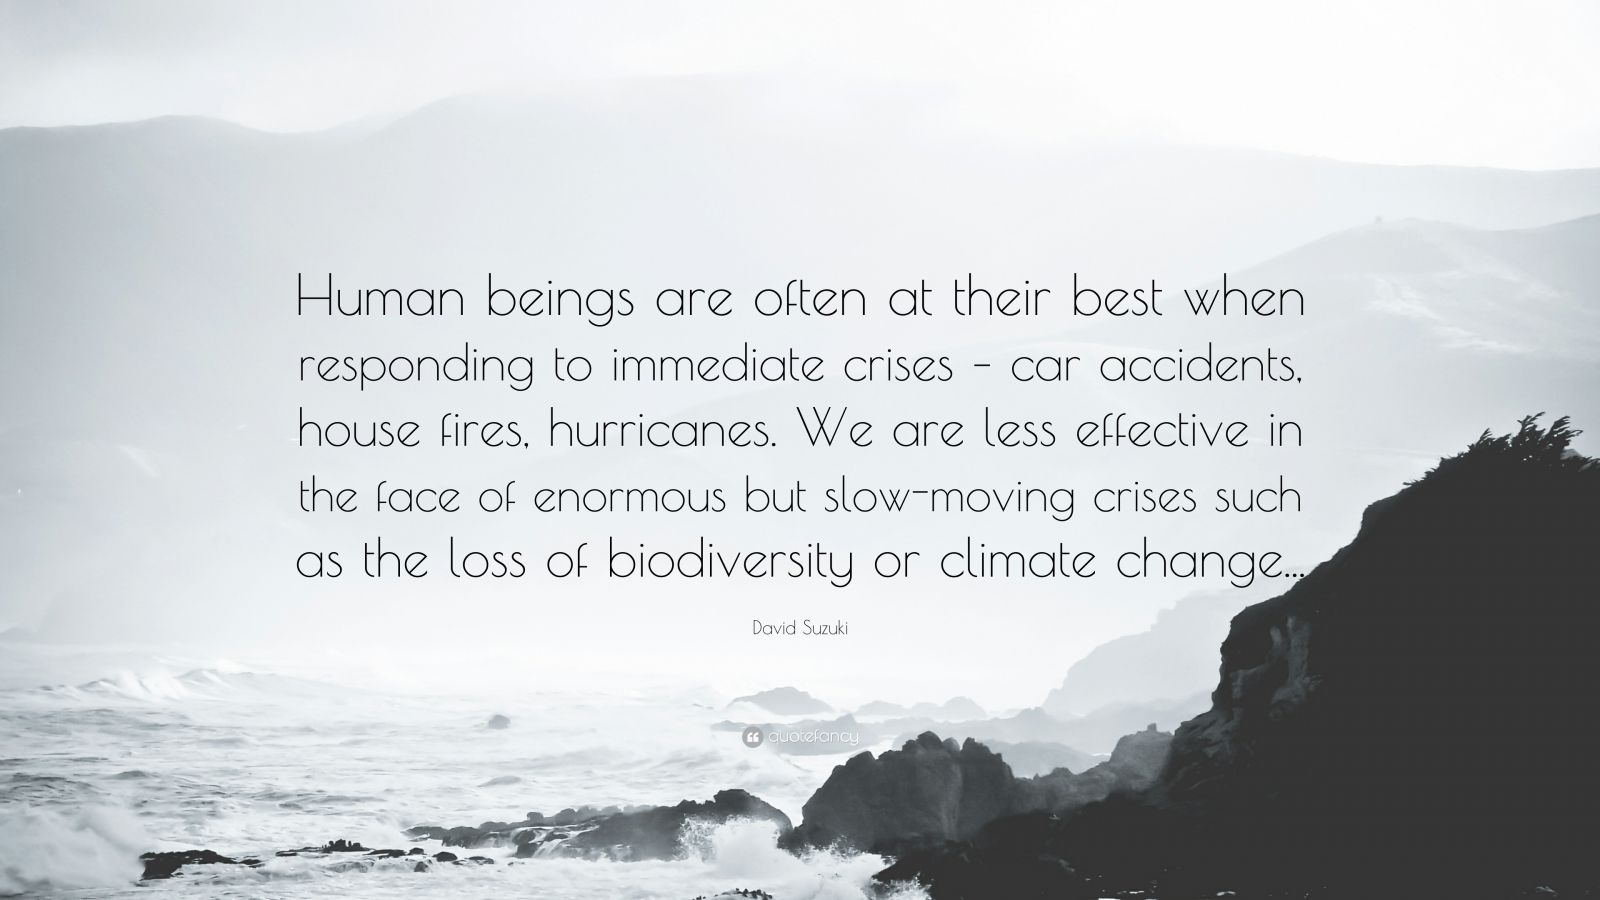 "David Suzuki Quote: ""Human beings are often at their best when responding to immediate crises – car accidents, house fires, hurricanes. We are less effective in the face of enormous but slow-moving crises such as the loss of biodiversity or climate change..."""